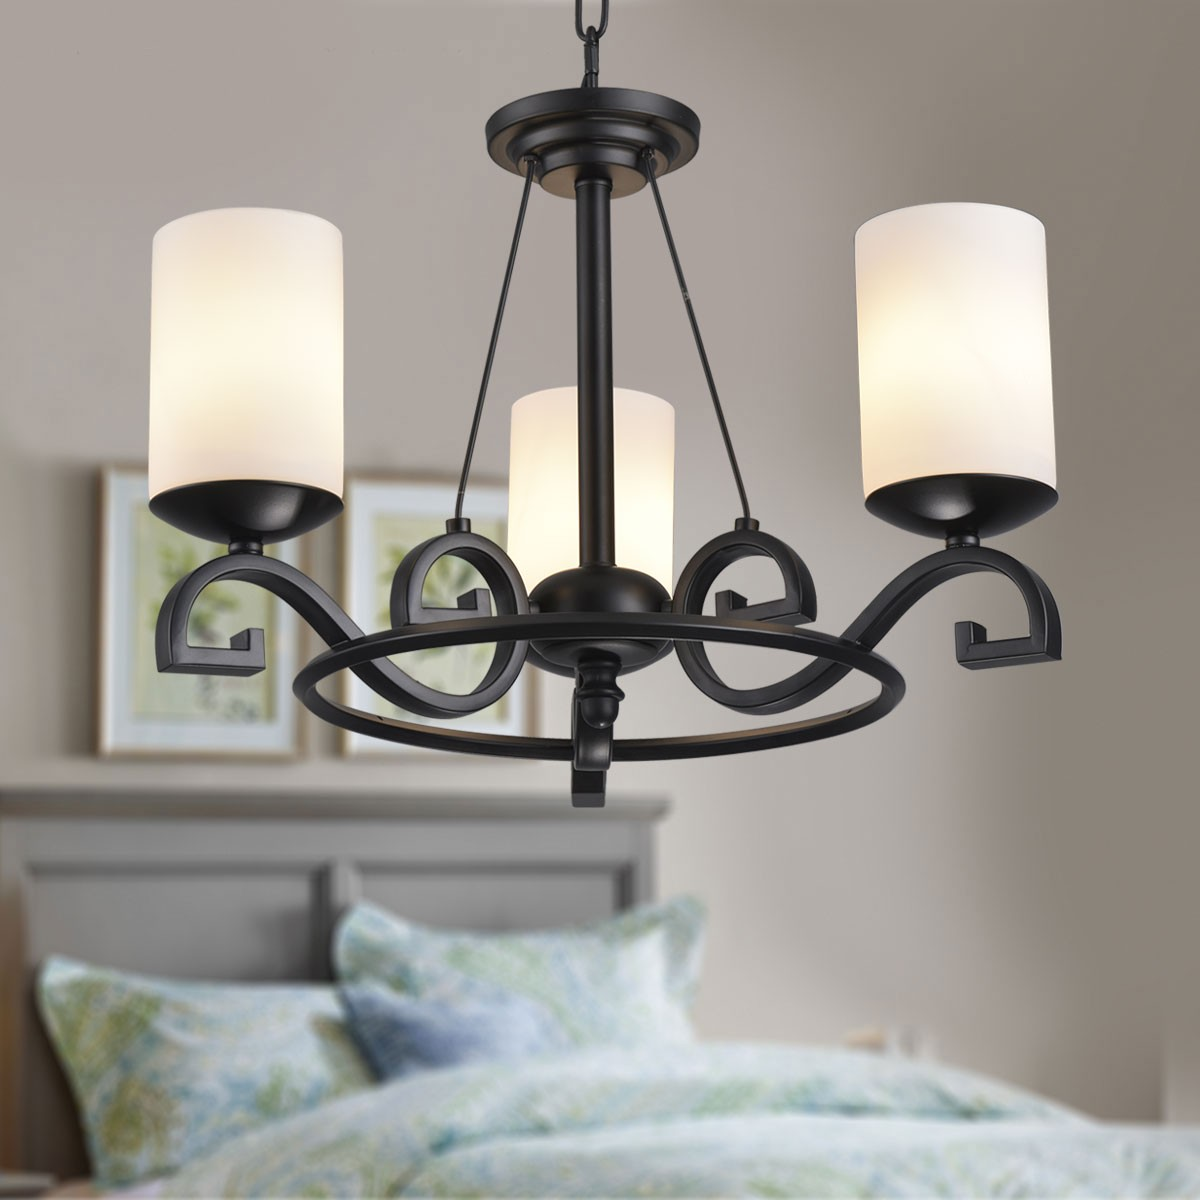 3 light black wrought iron chandelier with glass shades dk 8020 3 3 light black wrought iron chandelier with glass shades dk 8020 3 aloadofball